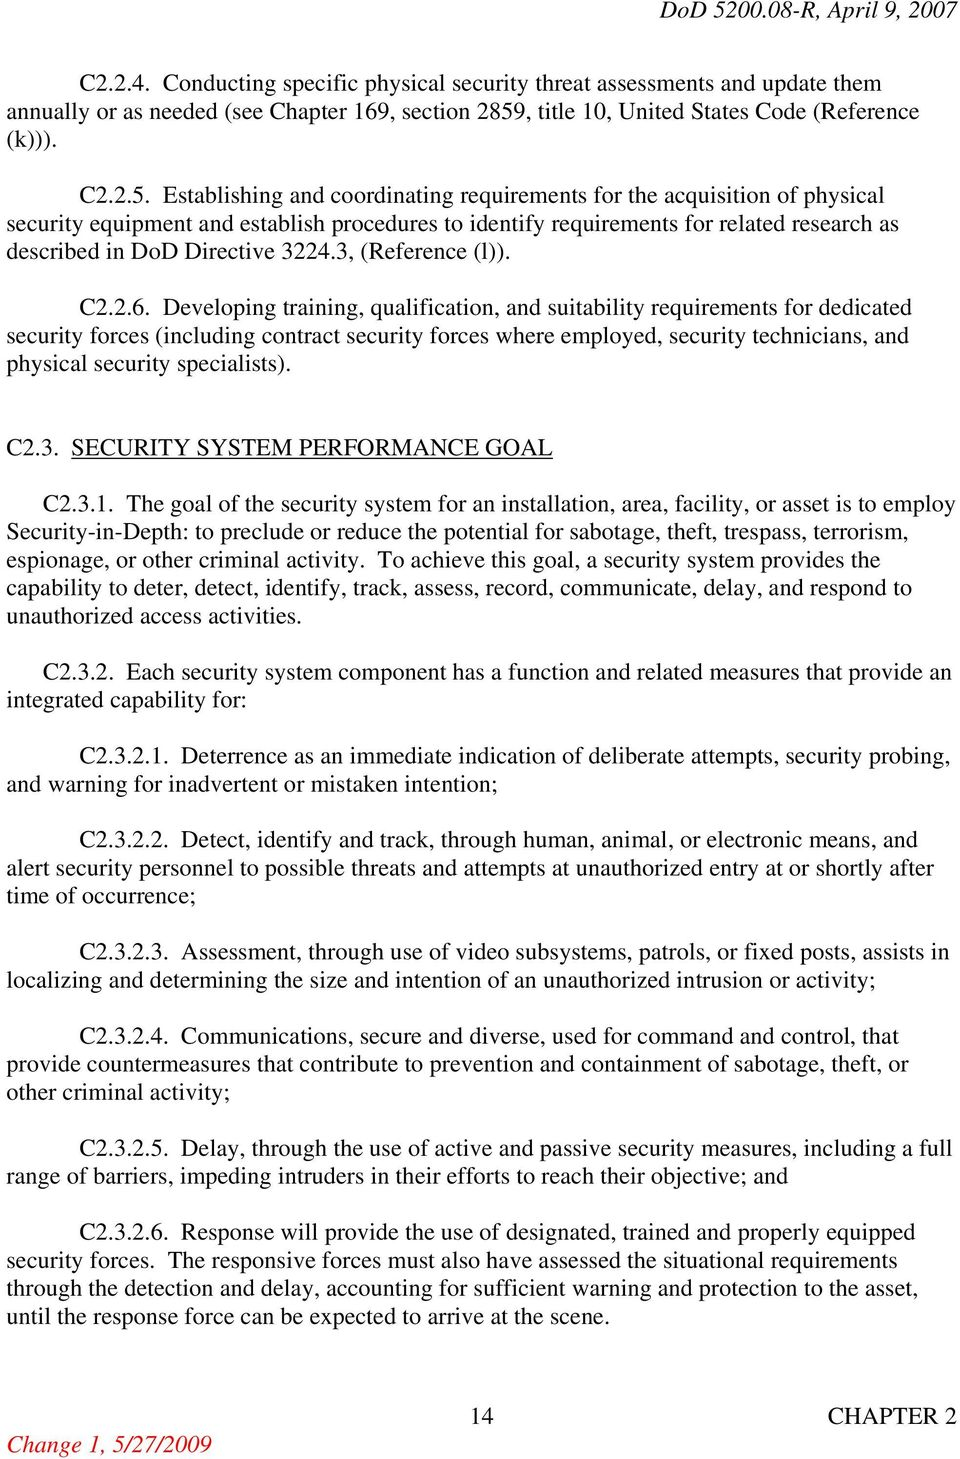 Establishing and coordinating requirements for the acquisition of physical security equipment and establish procedures to identify requirements for related research as described in DoD Directive 3224.